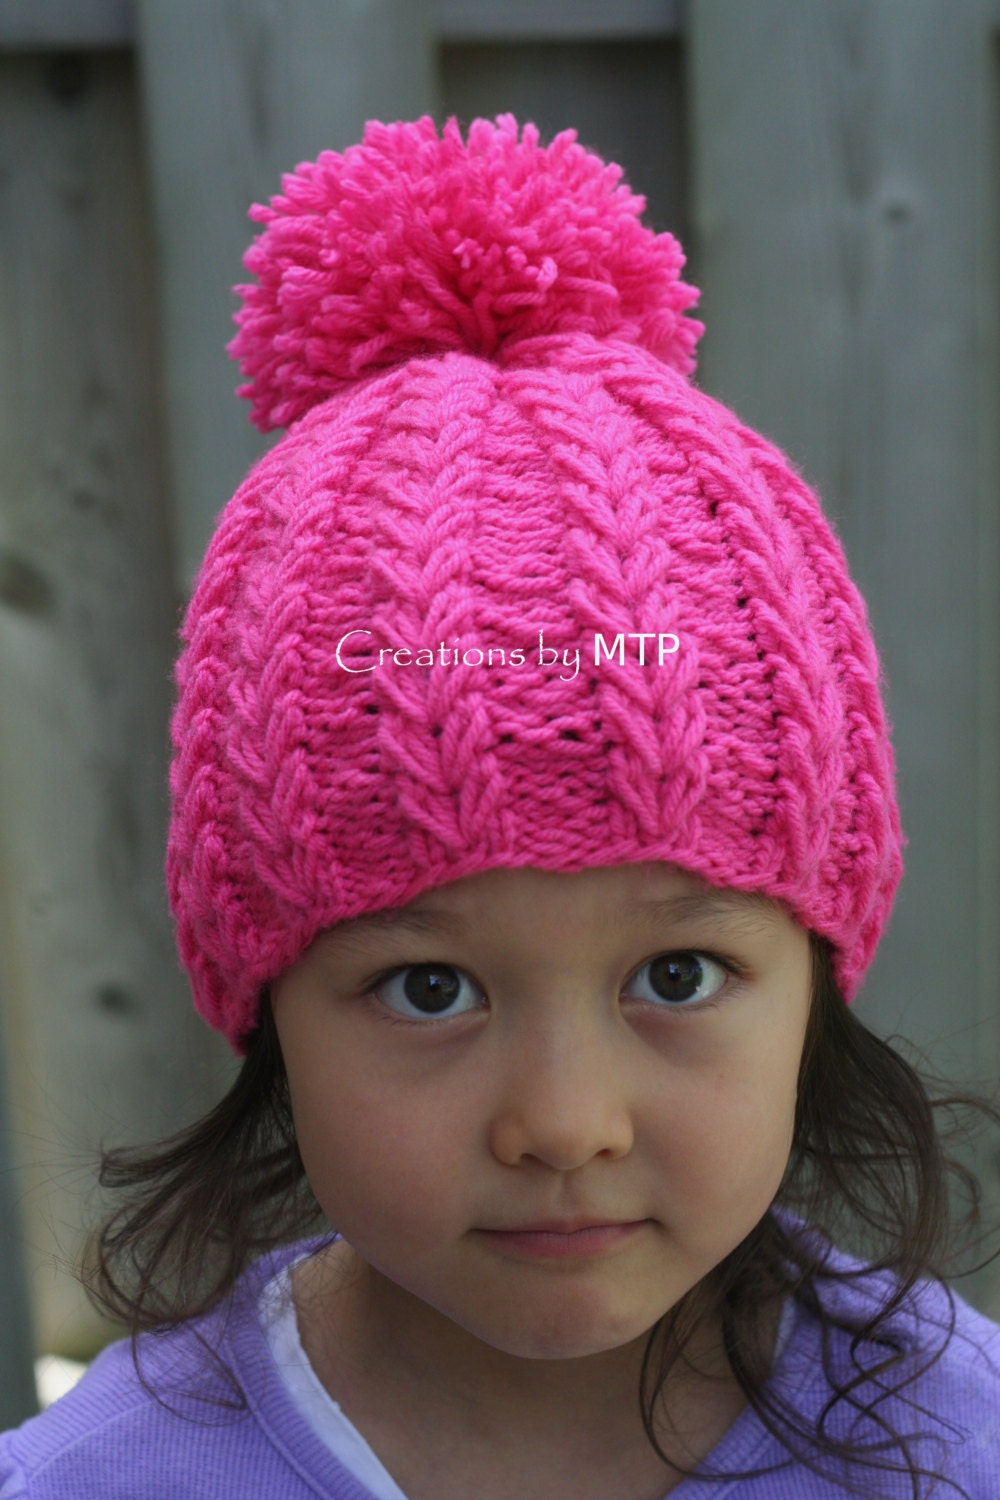 Knit Pom Pom Hat Pattern : PDF KNITTING PATTERN Heart String Knit Hat with Pom-Pom